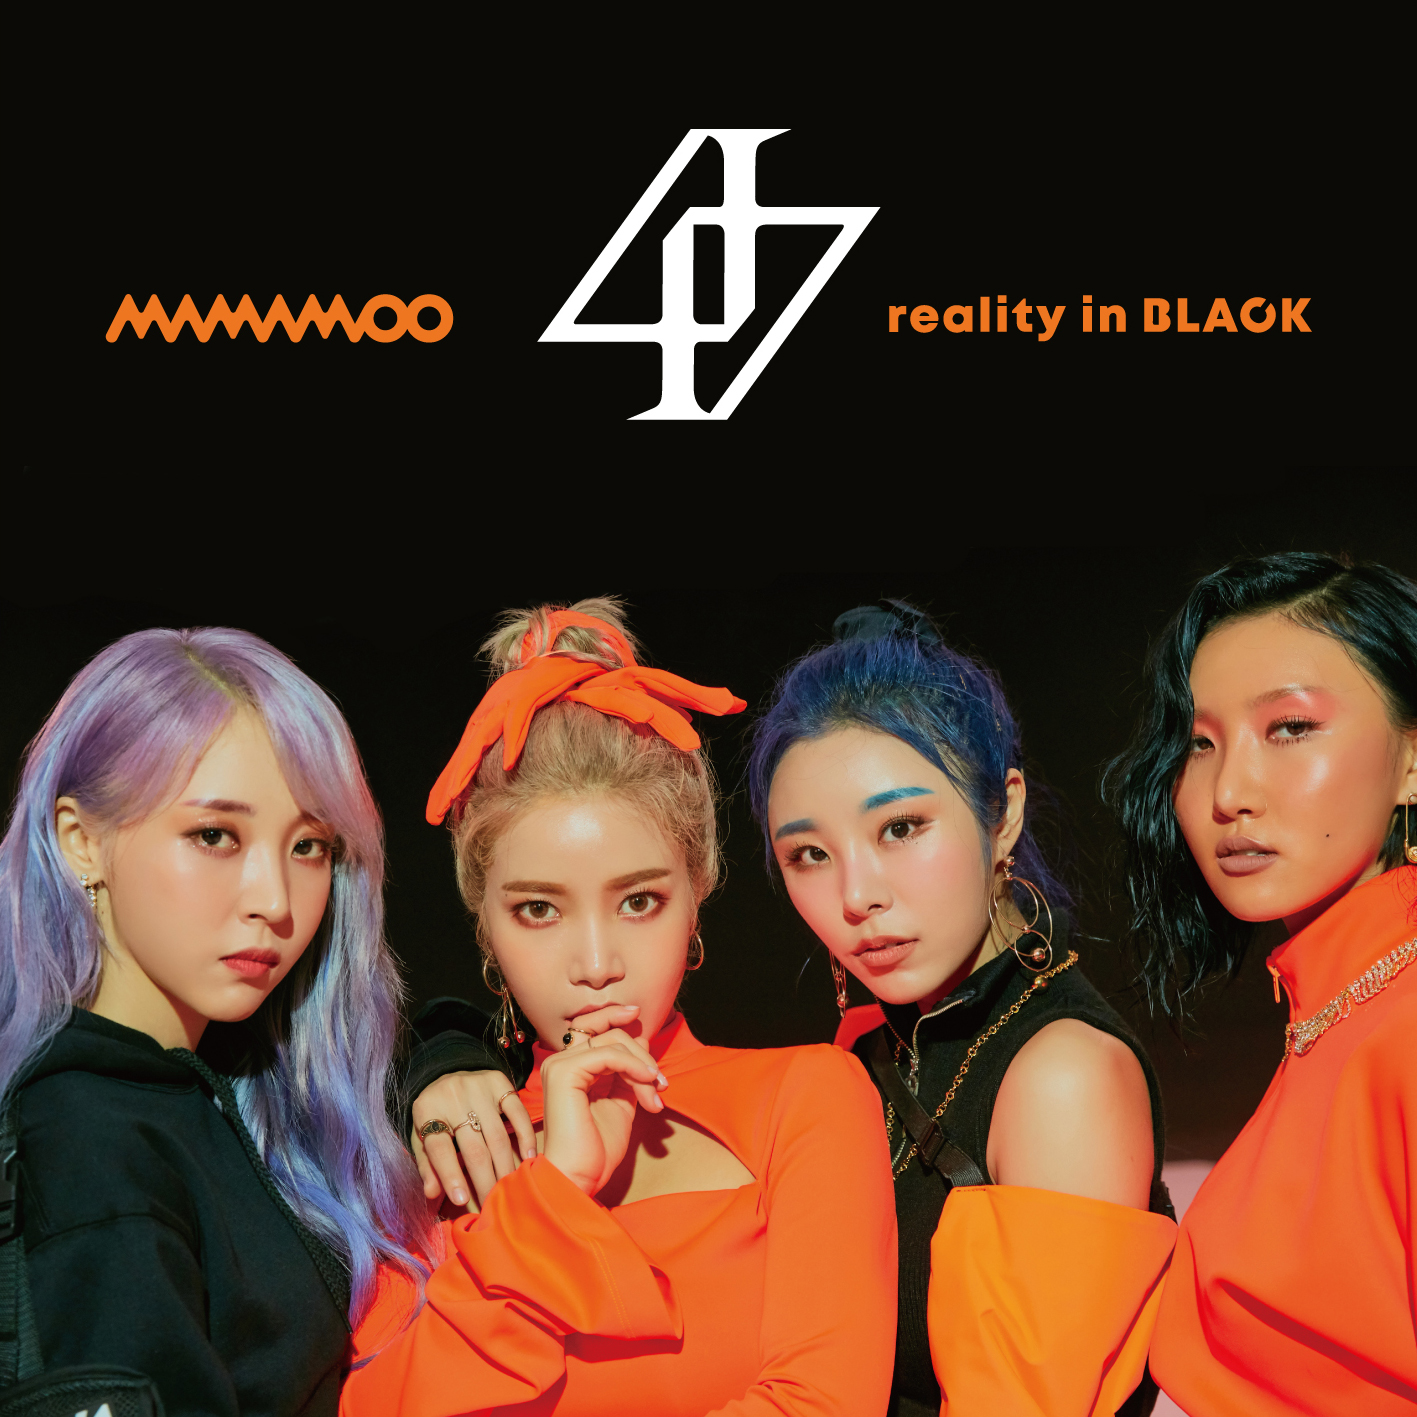 reality in BLACK -Japanese Edition-